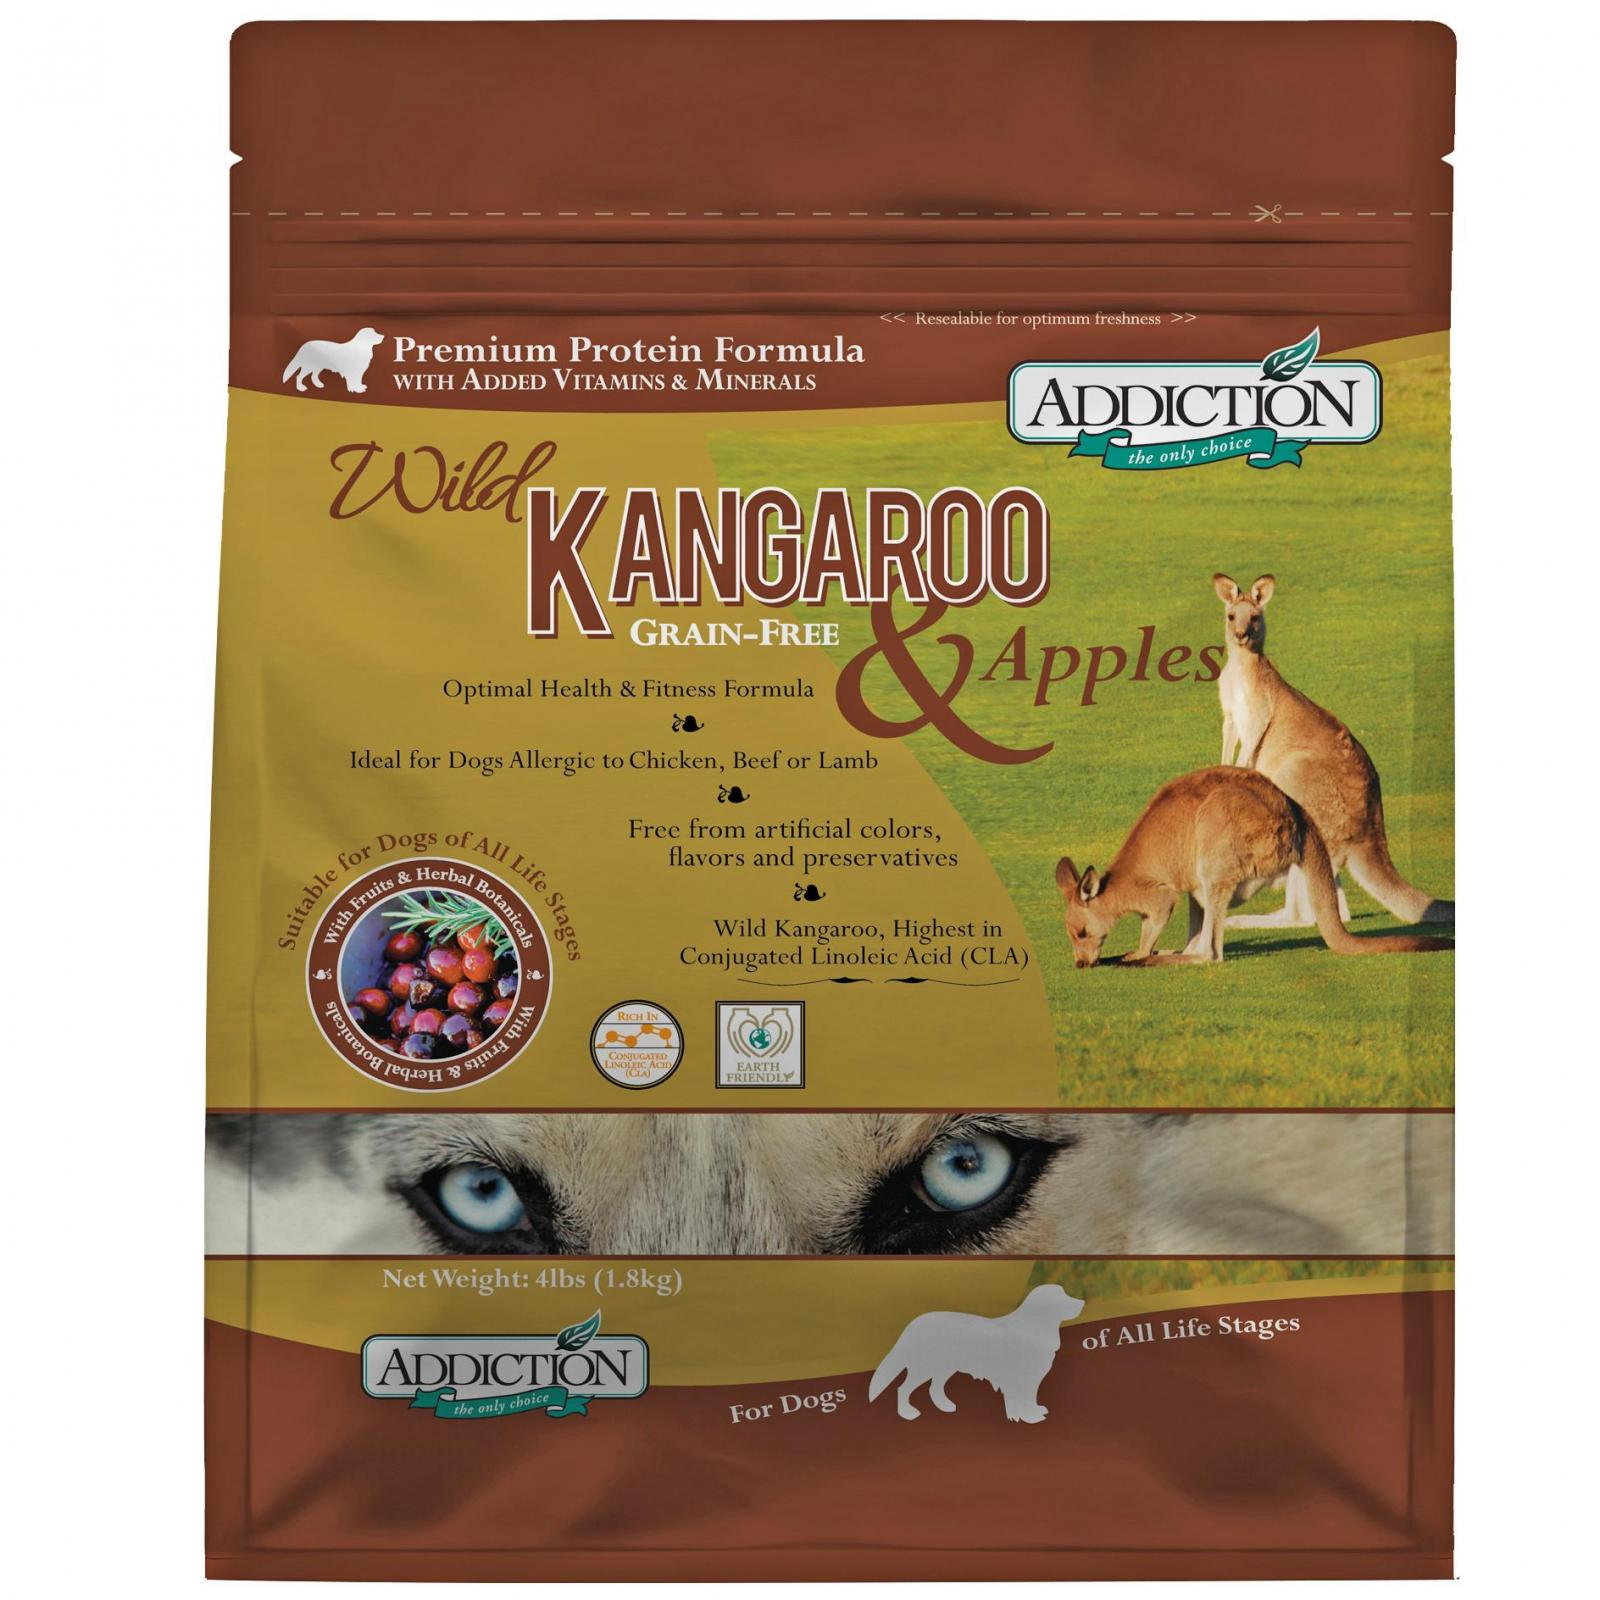 ADDICTION Addiction Wild Kangaroo & Apple Grain Free Dry Dog Food